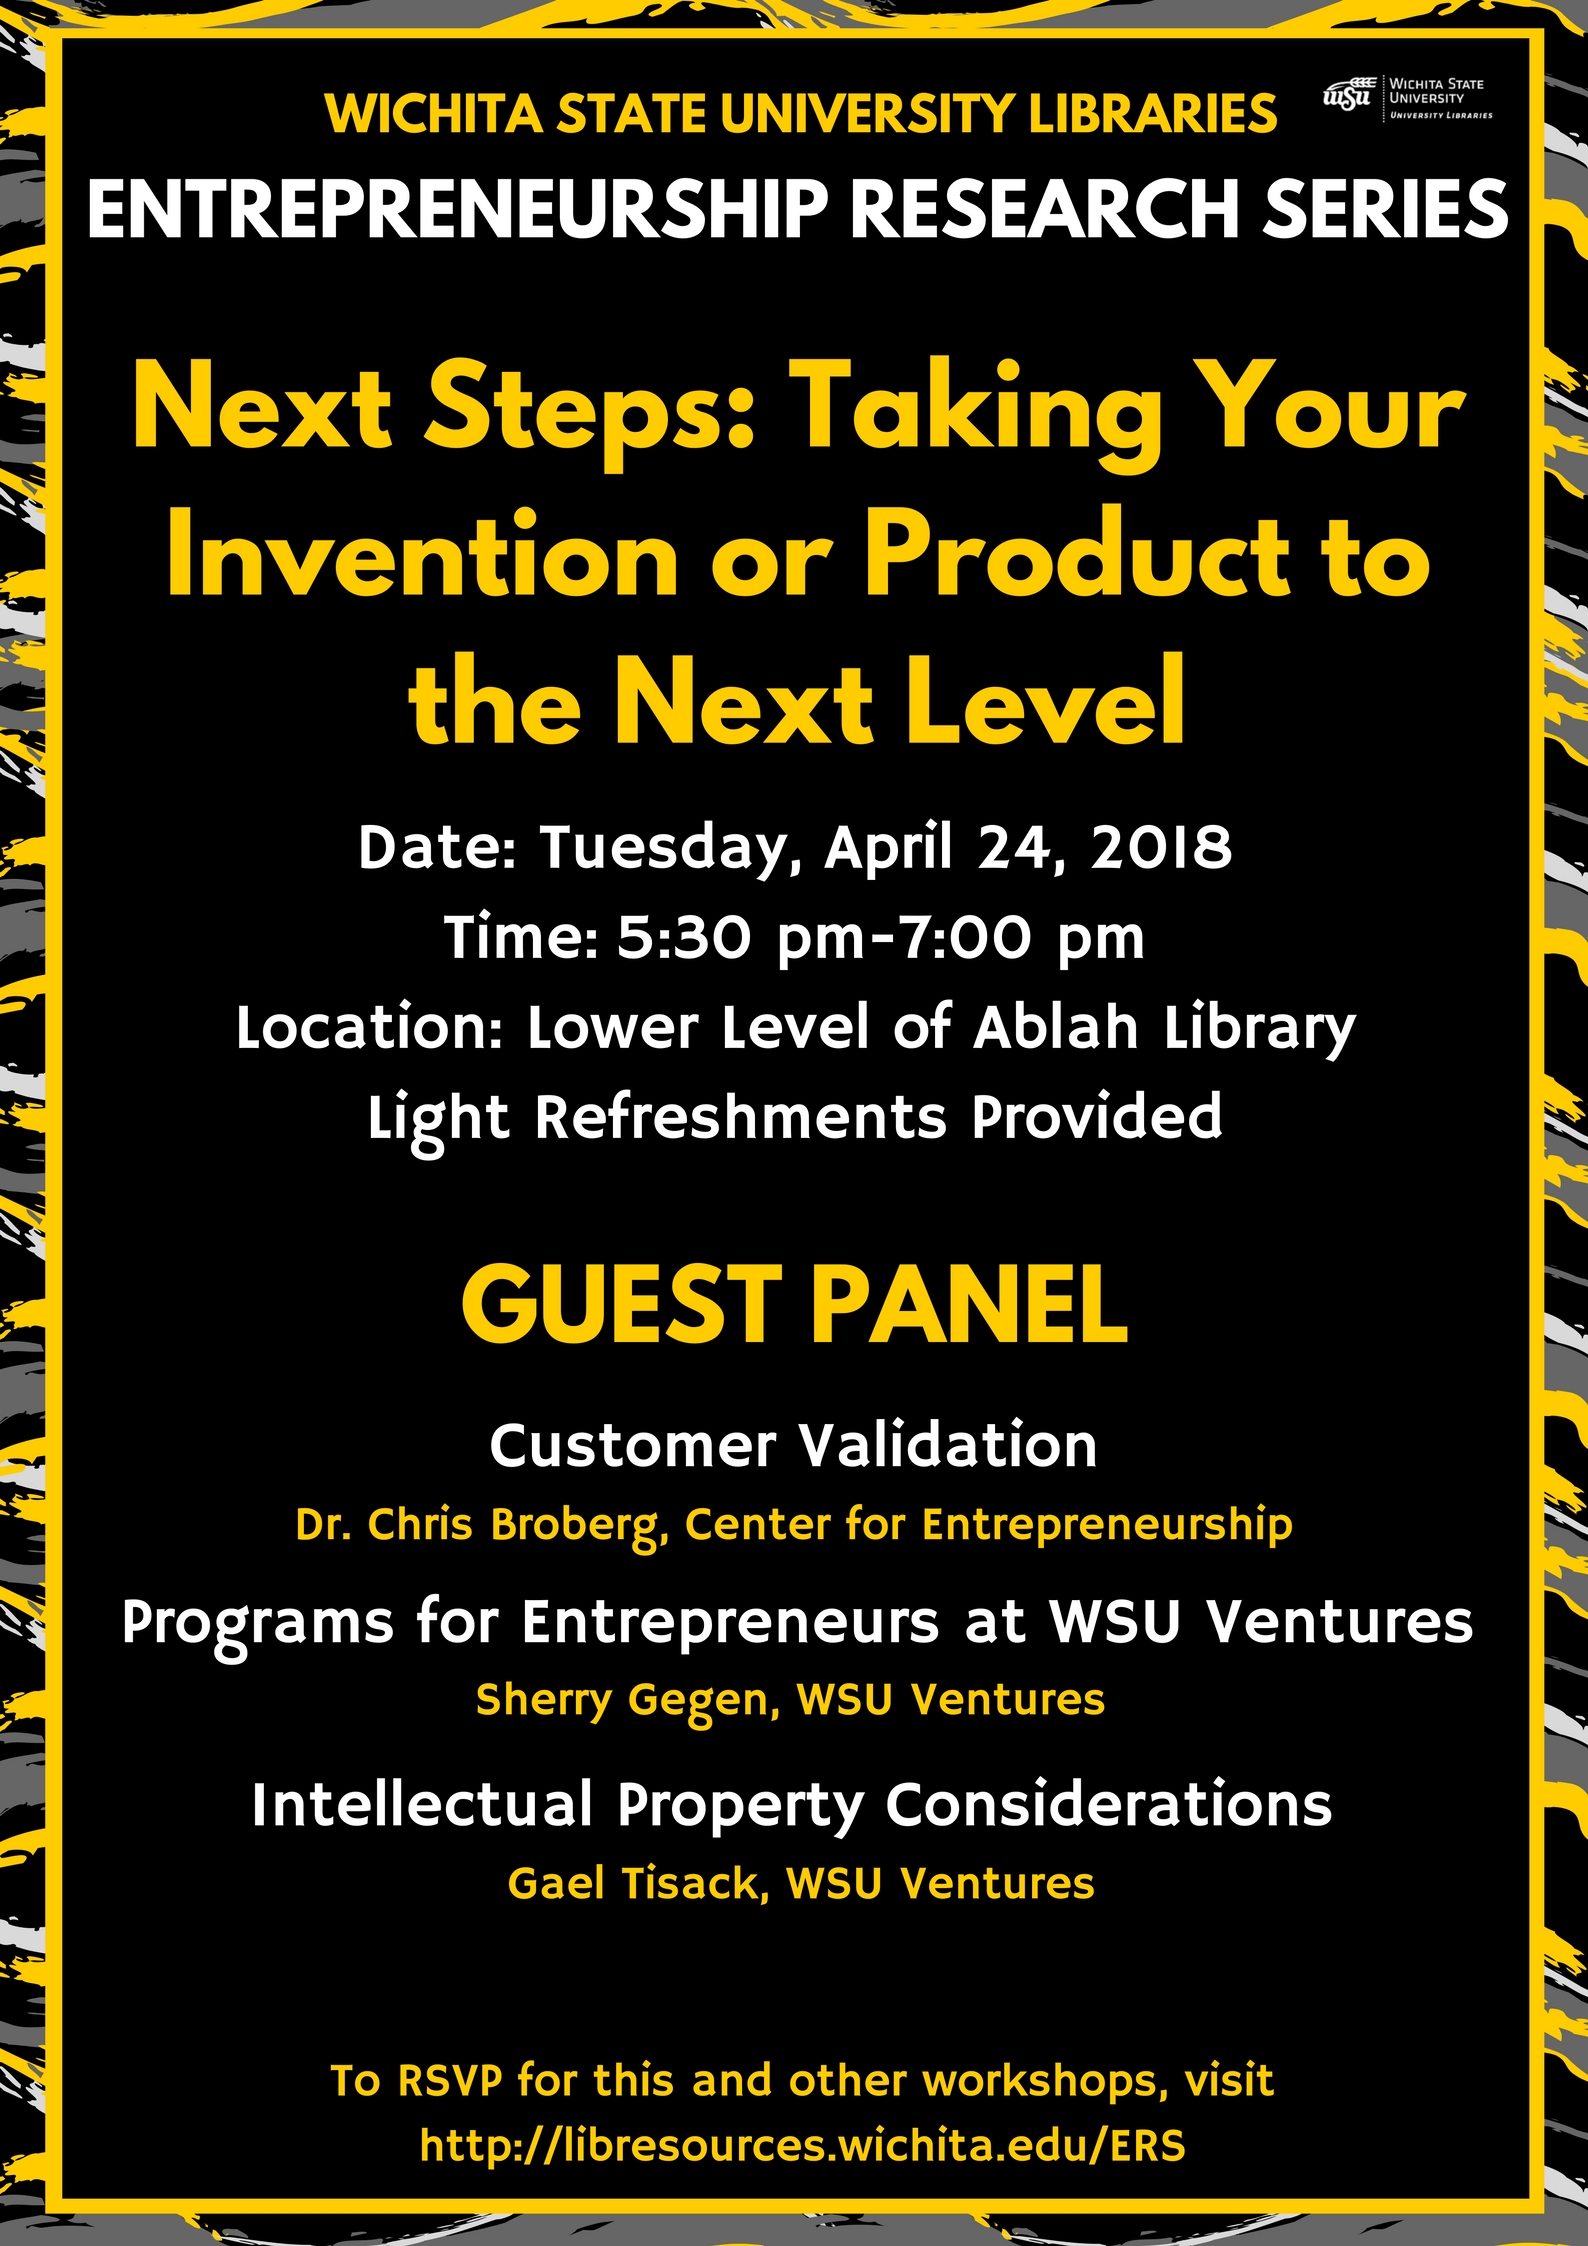 WSU Ventures Guest Panel: Next Steps: Taking Your Invention or Product to the Next Level